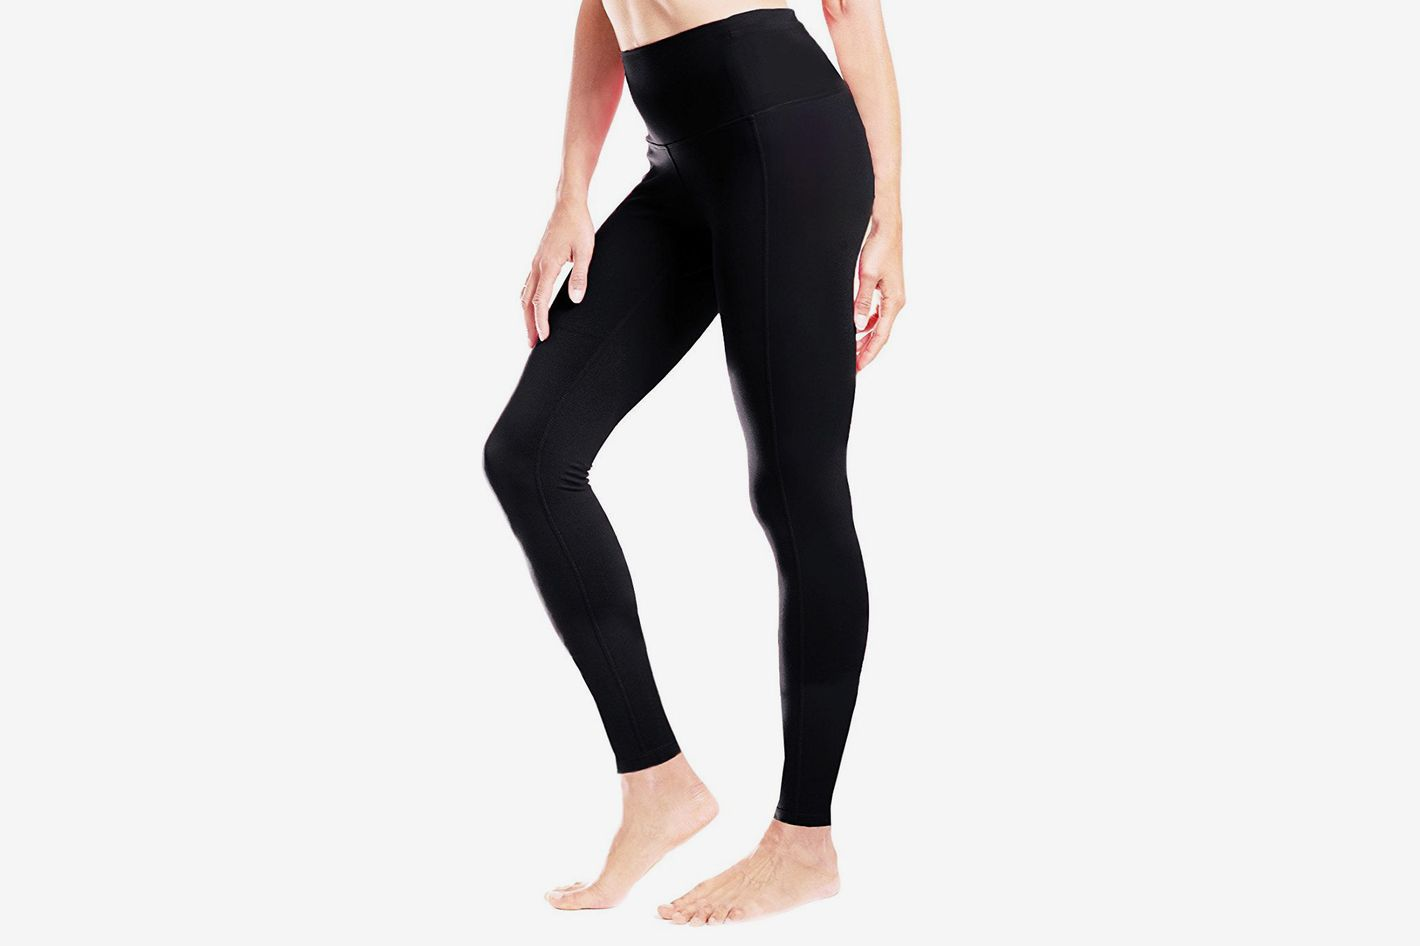 2282ddf75a Yogipace Petite Length High Waisted Yoga Leggings